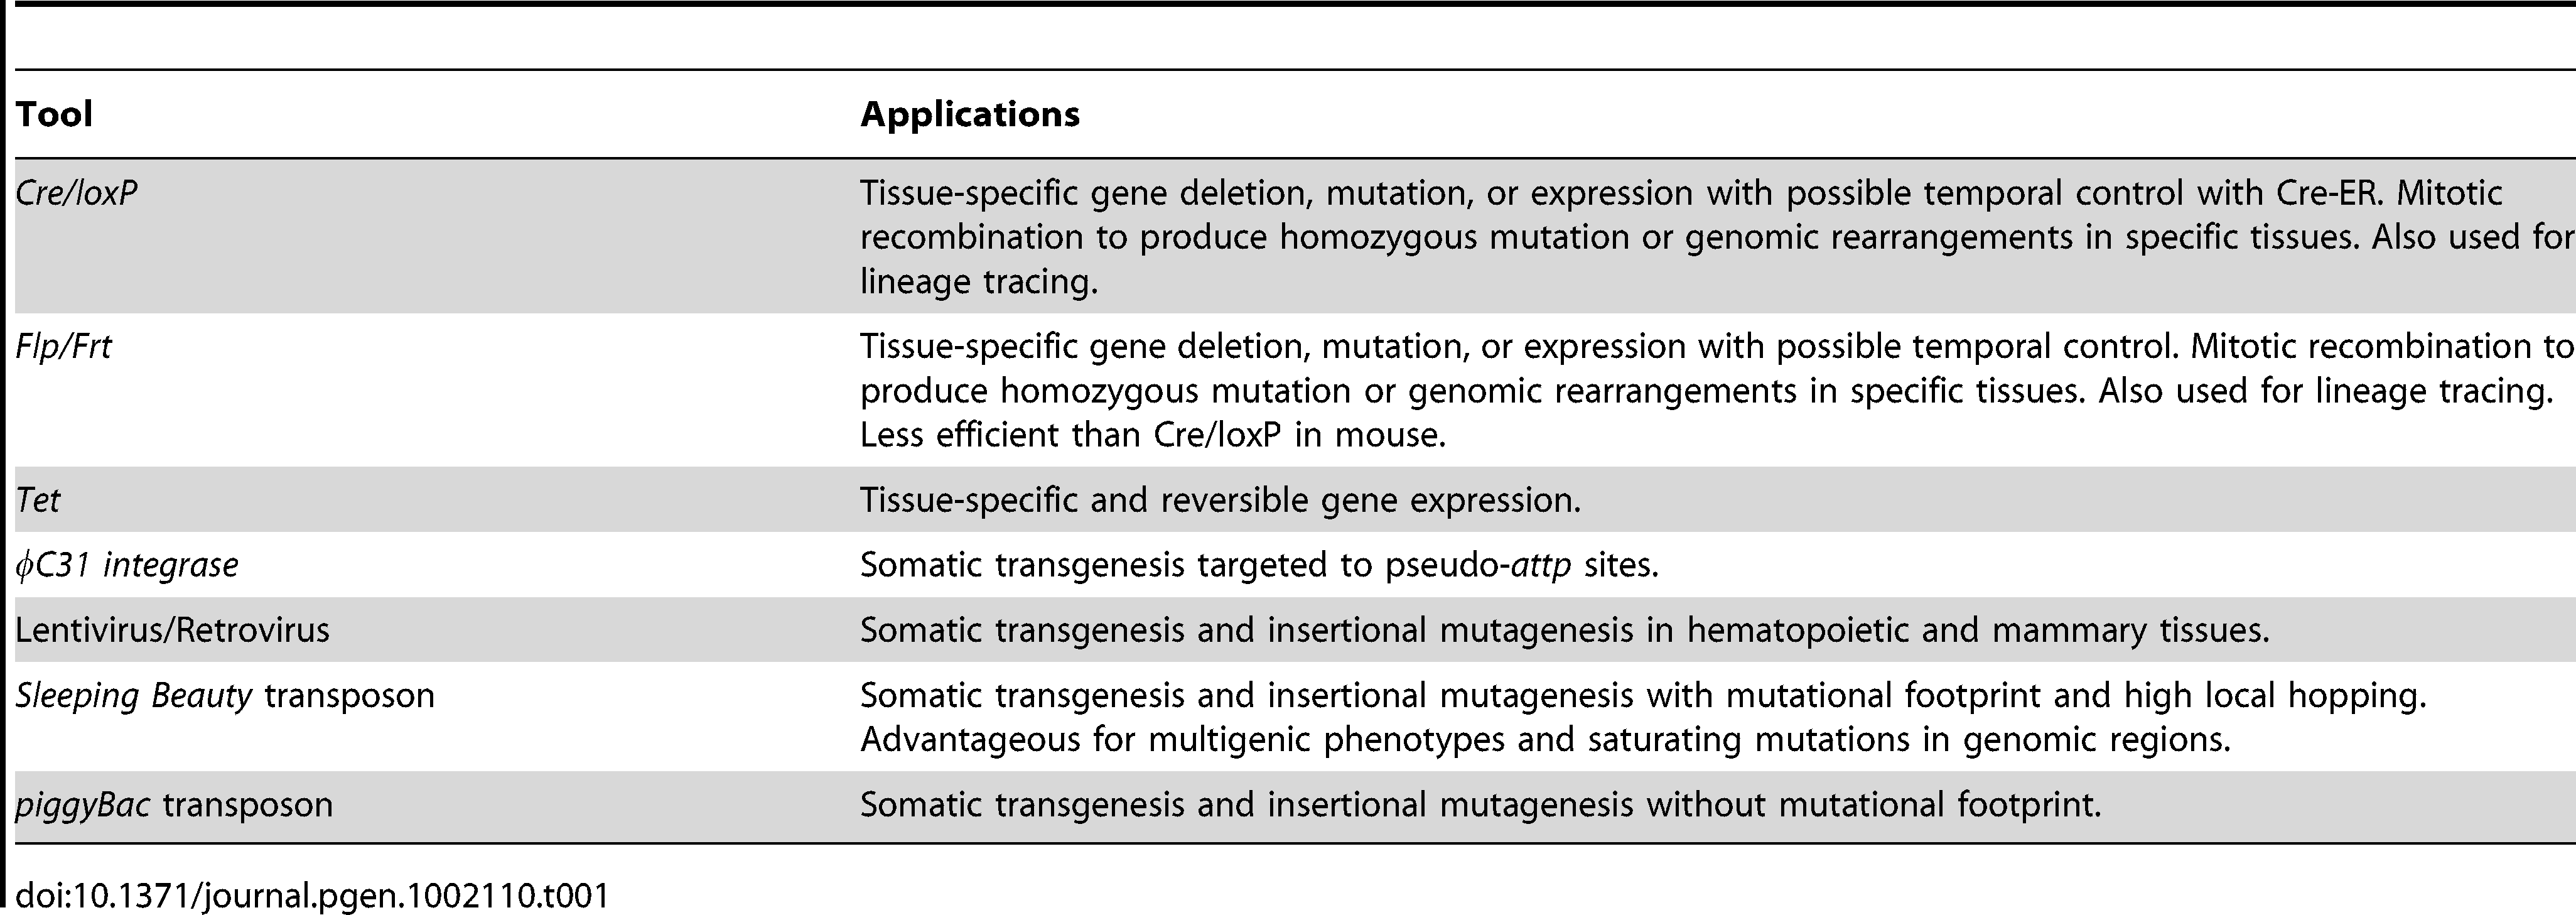 Genetic Tools for Generating Mutant Clones and Somatic Mutagenesis in Mice.